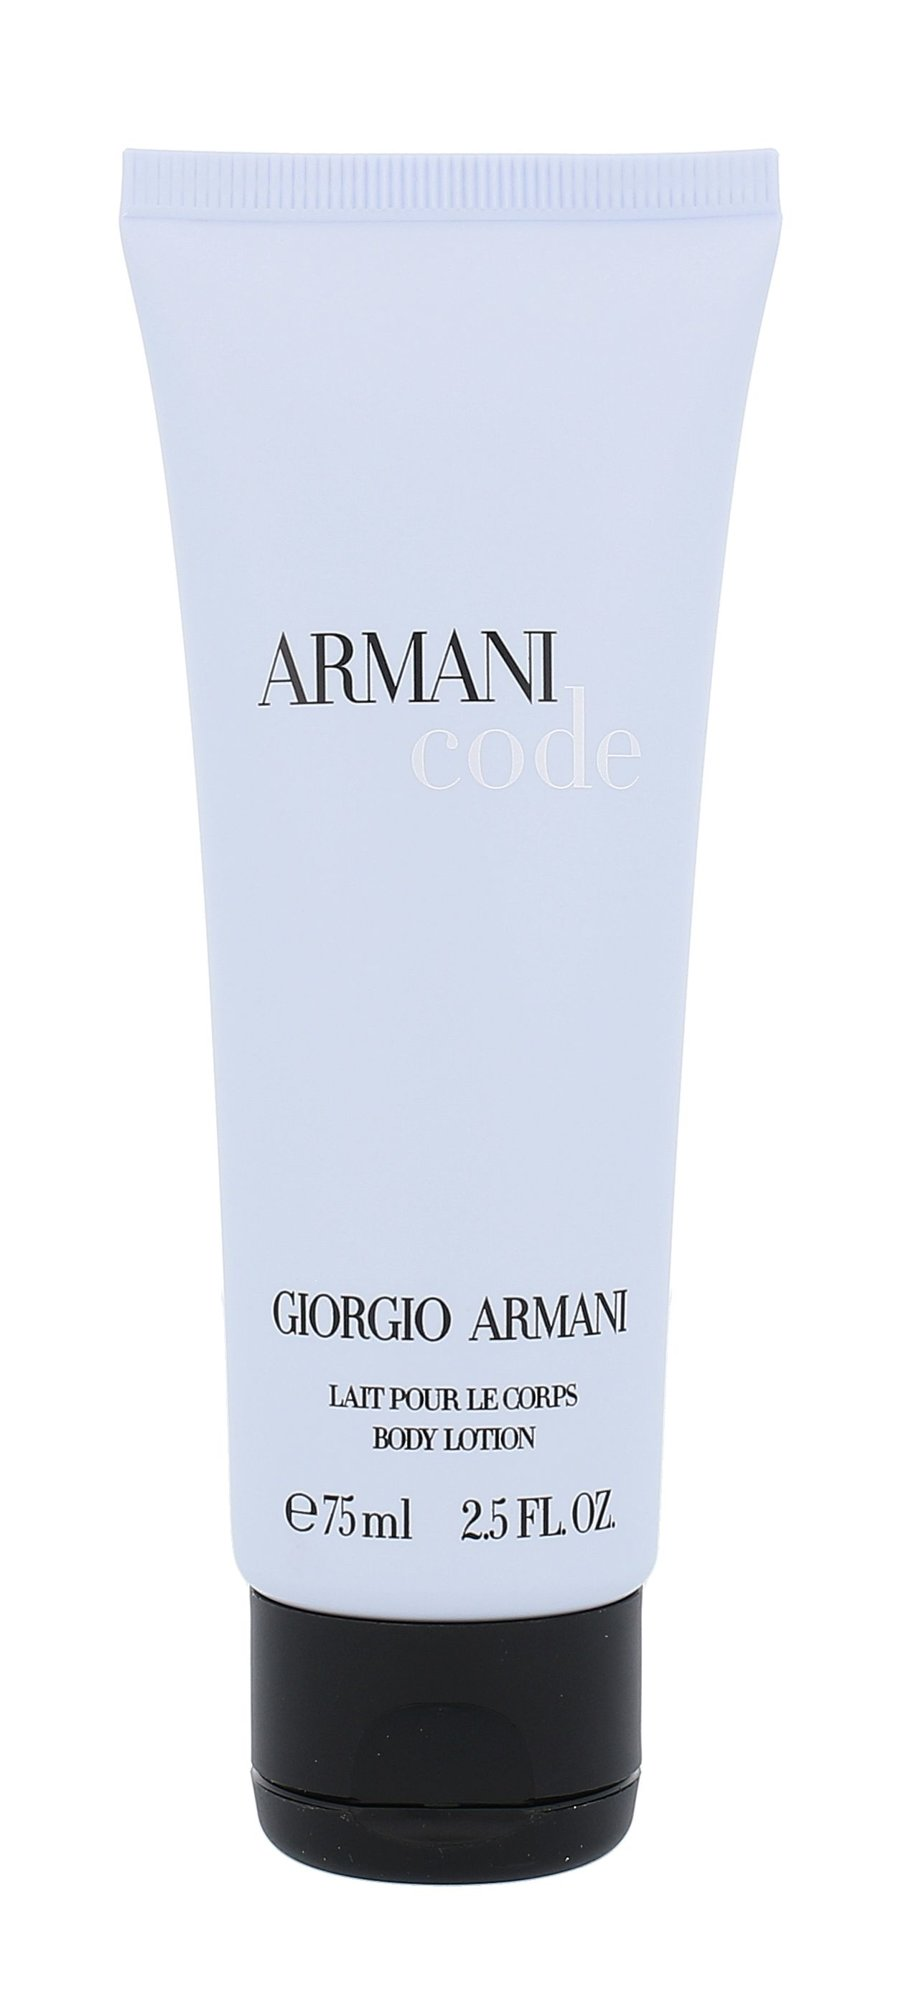 Giorgio Armani Armani Code Women Body lotion 75ml